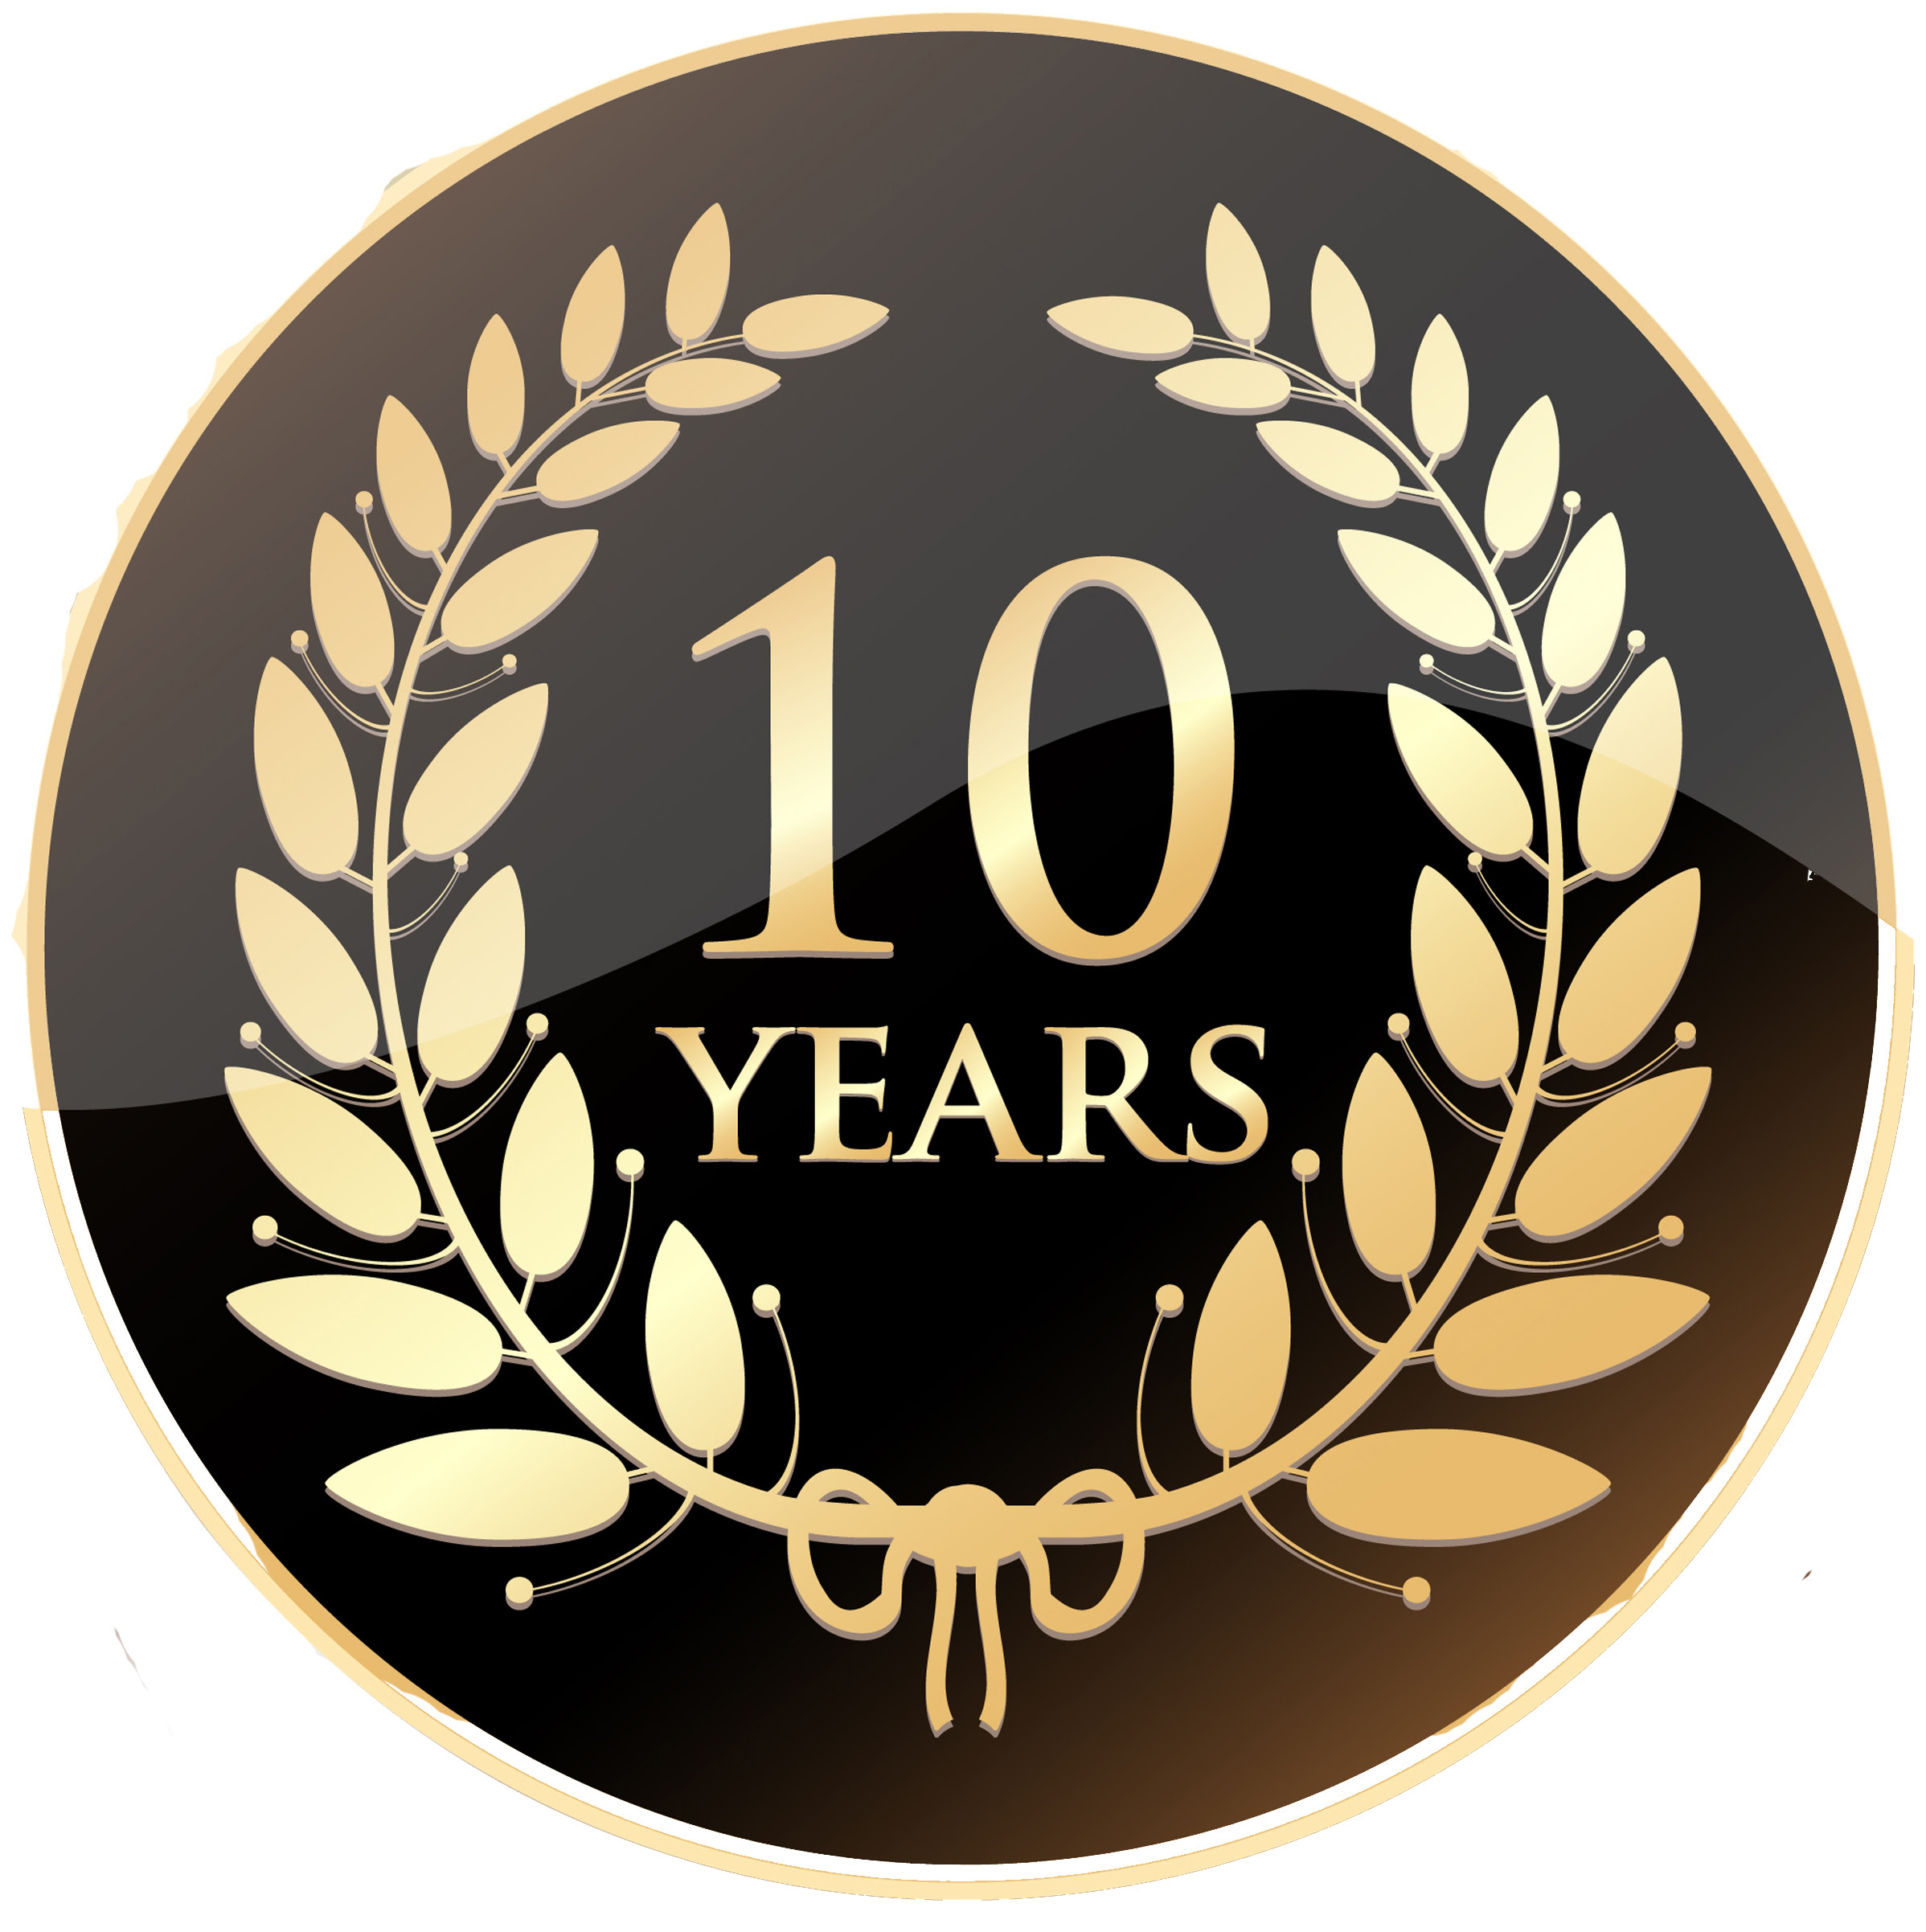 http://info.nationalcorp.com/Portals/153028/images/10years.jpg